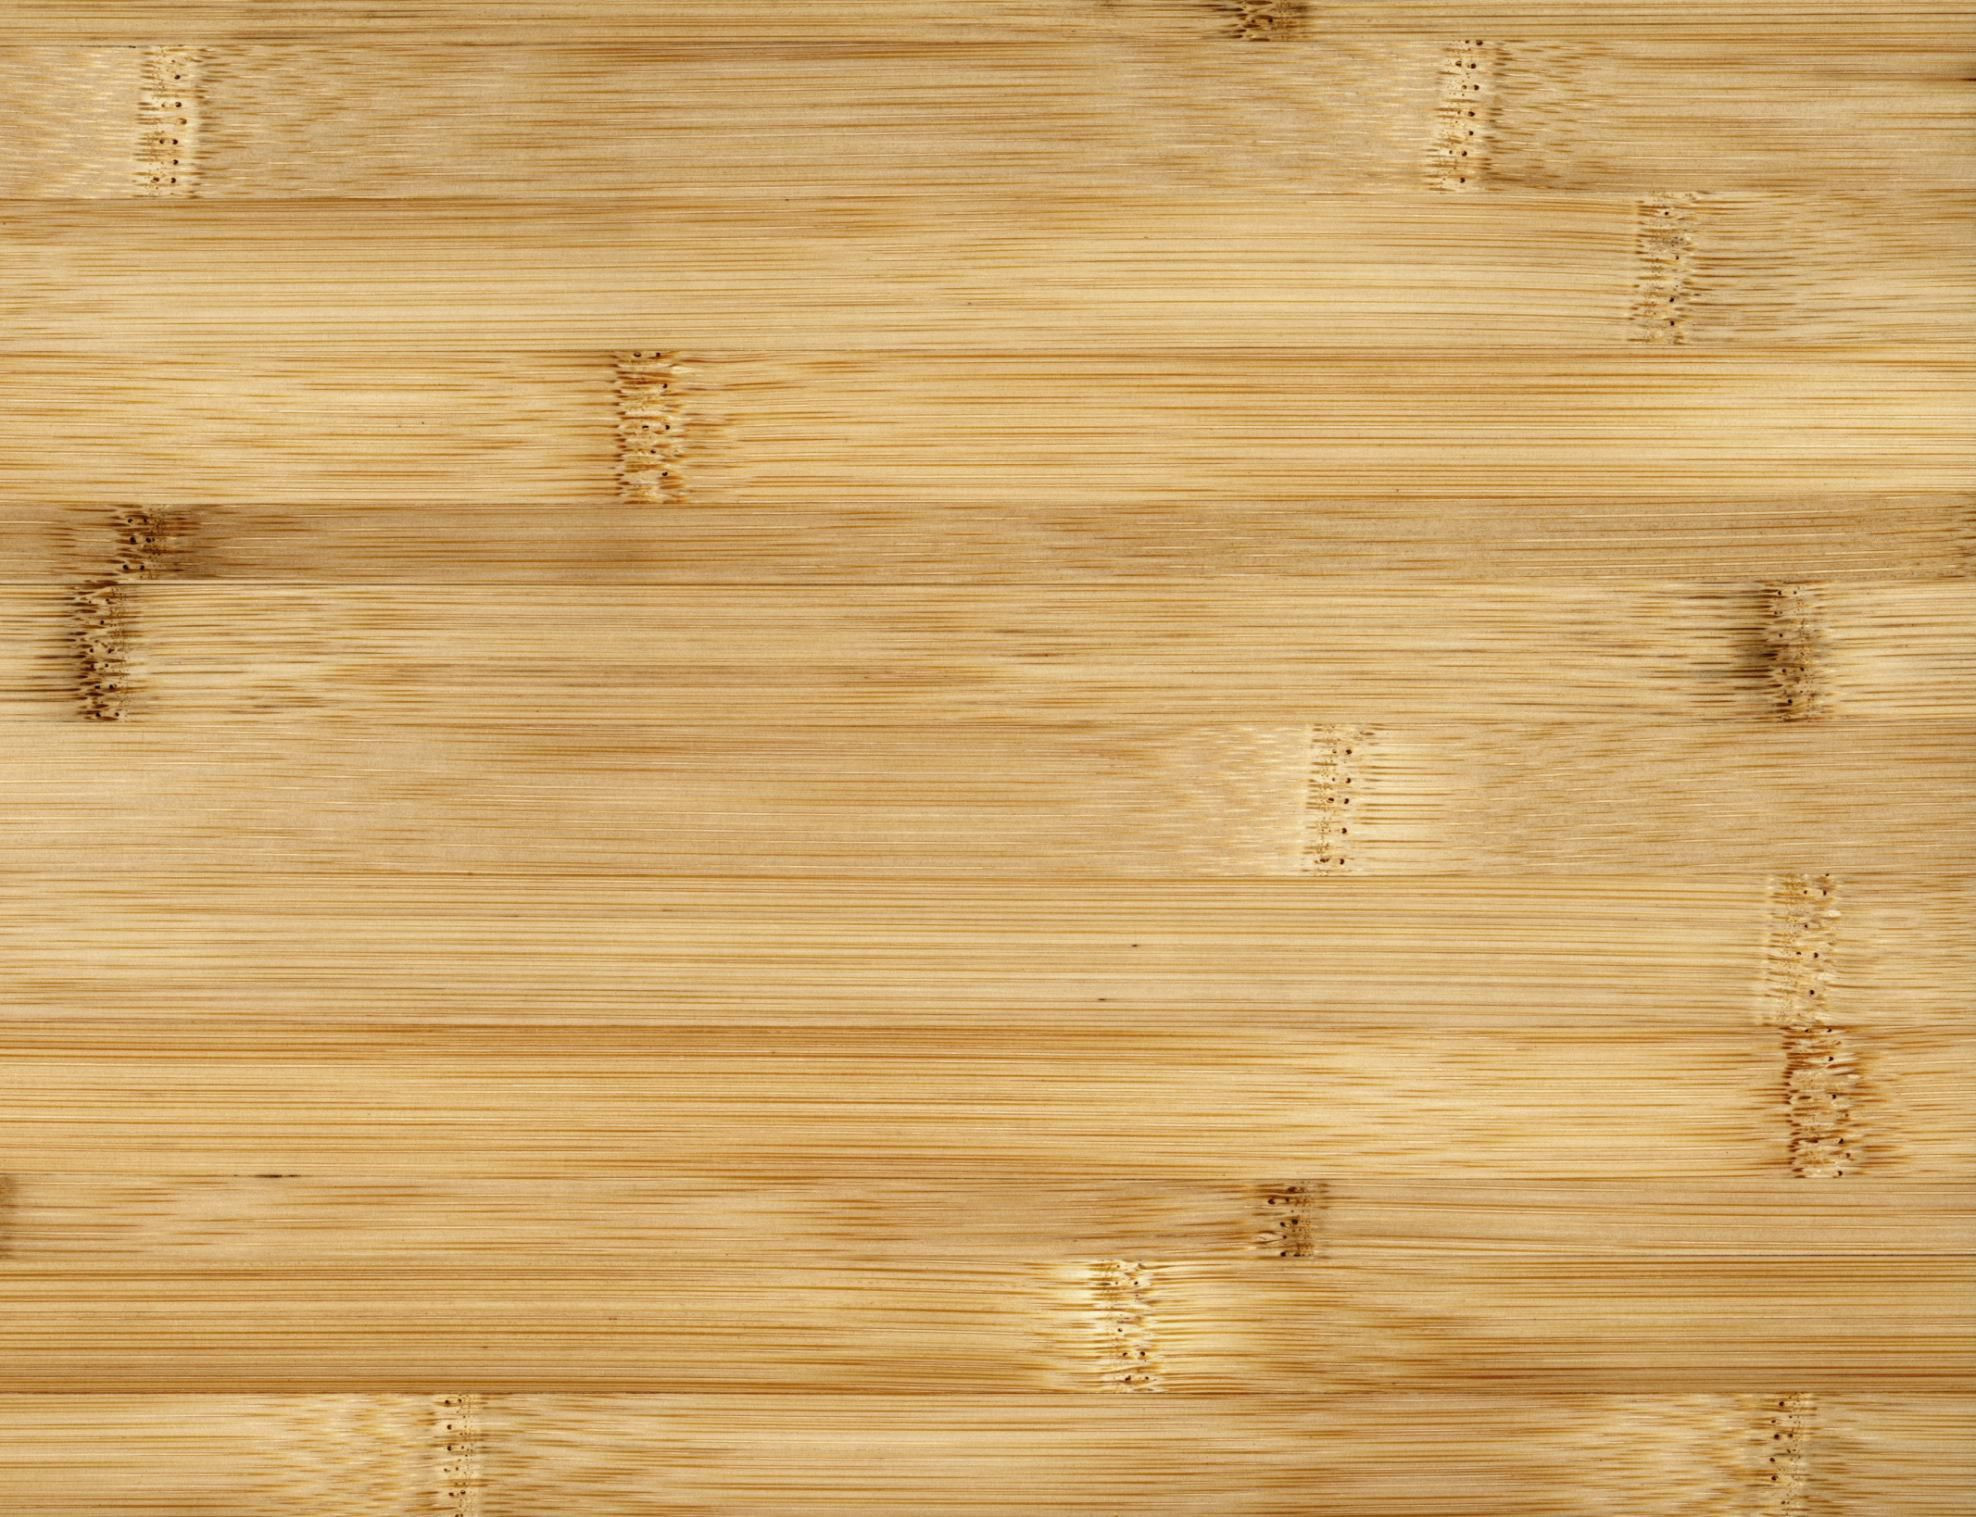 hardwood floor refinishing supplies of how to clean bamboo flooring with regard to 200266305 001 56a2fd815f9b58b7d0d000cd